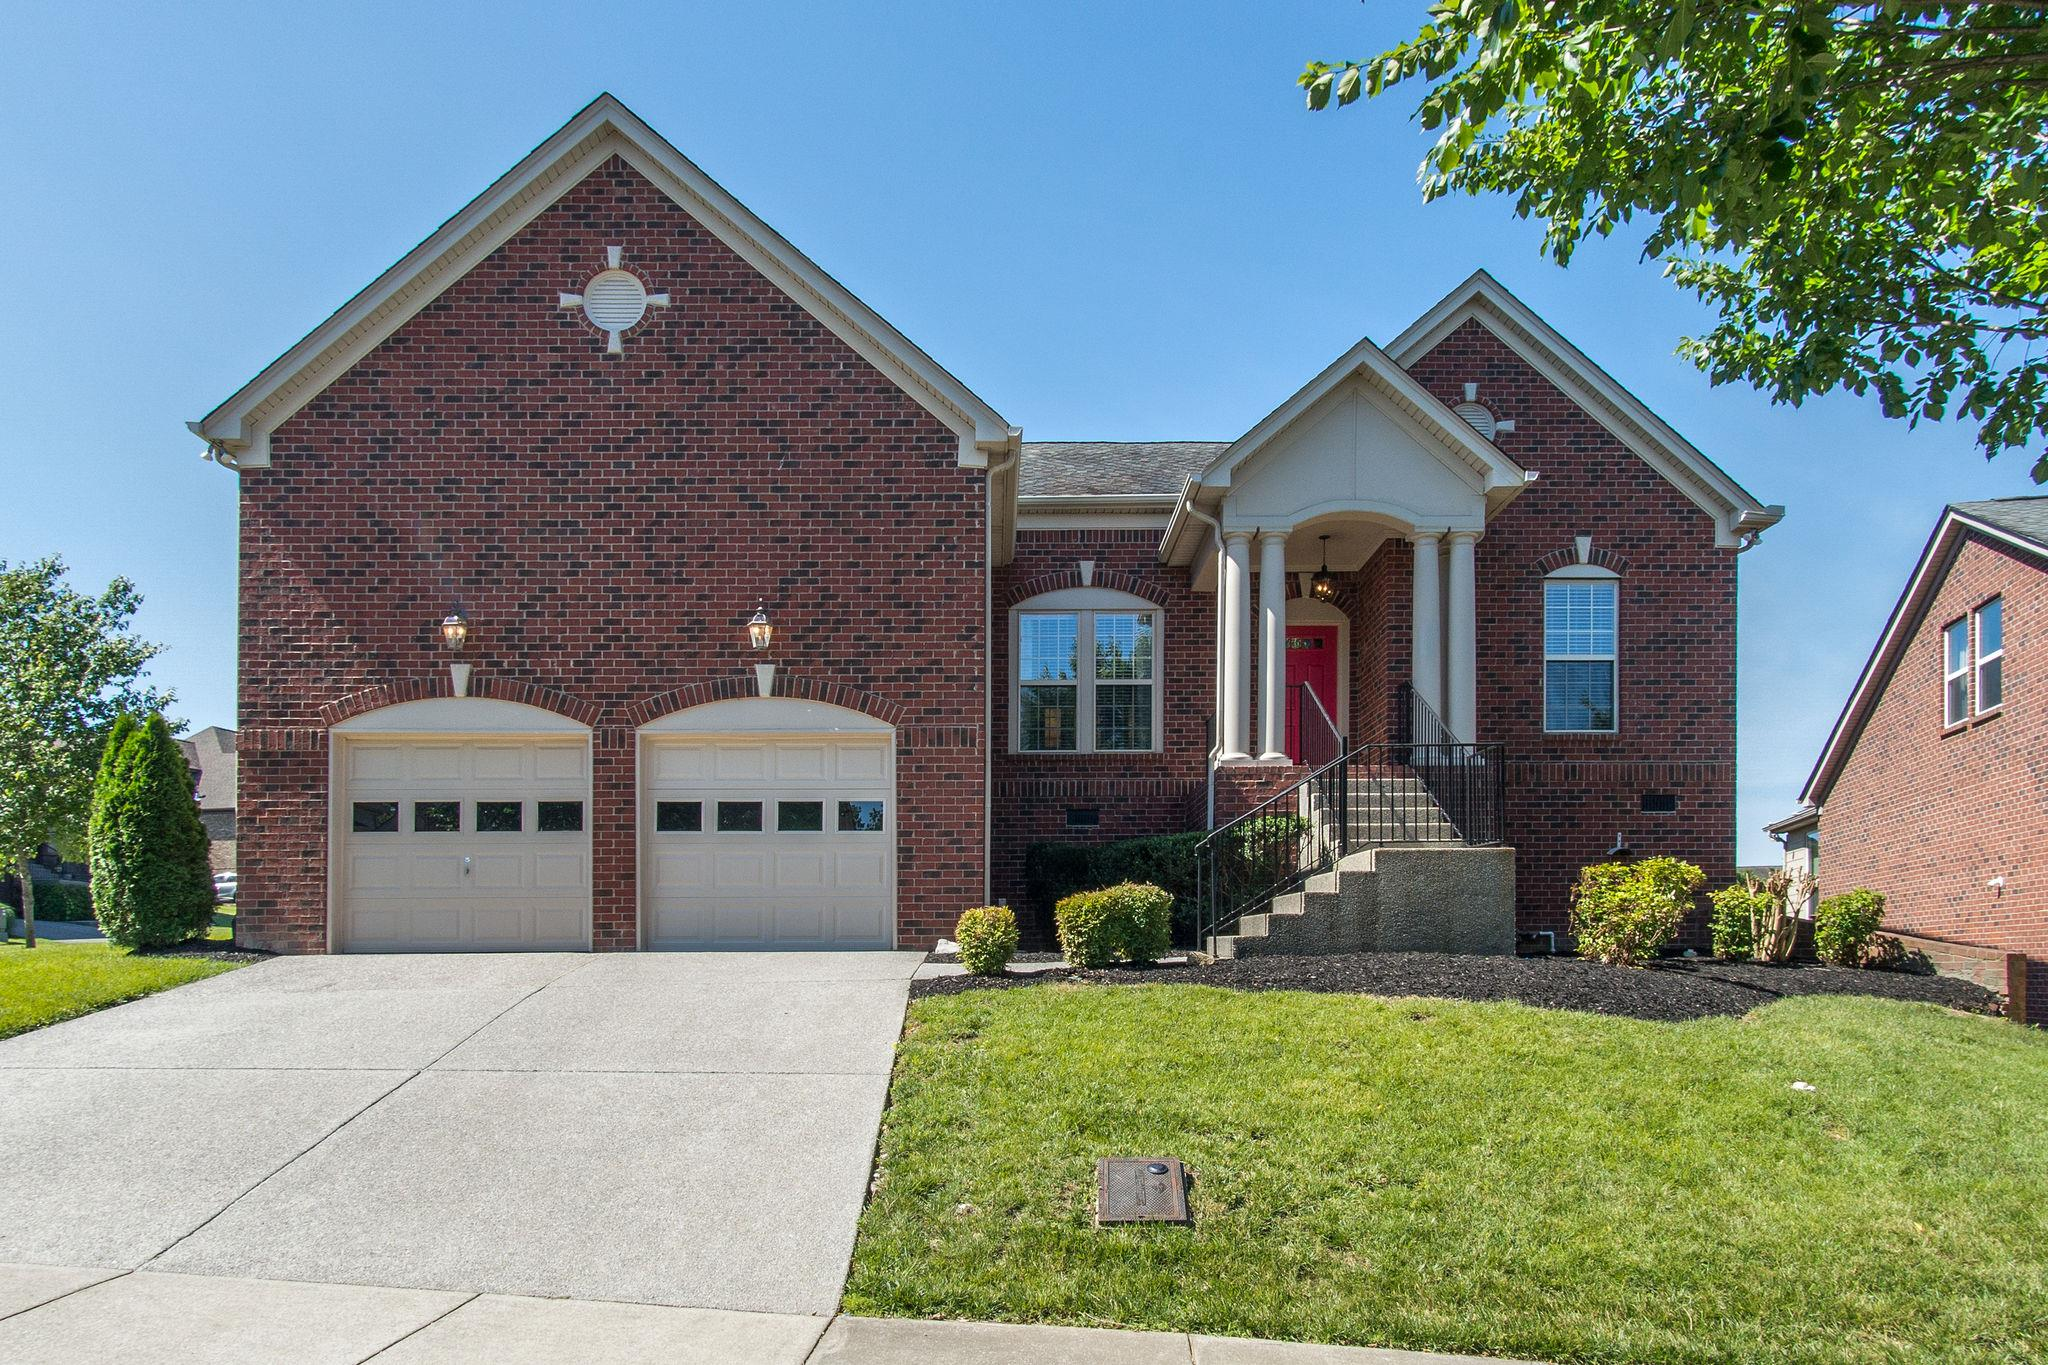 8956 Macauley Ln, Nolensville in Davidson County County, TN 37135 Home for Sale